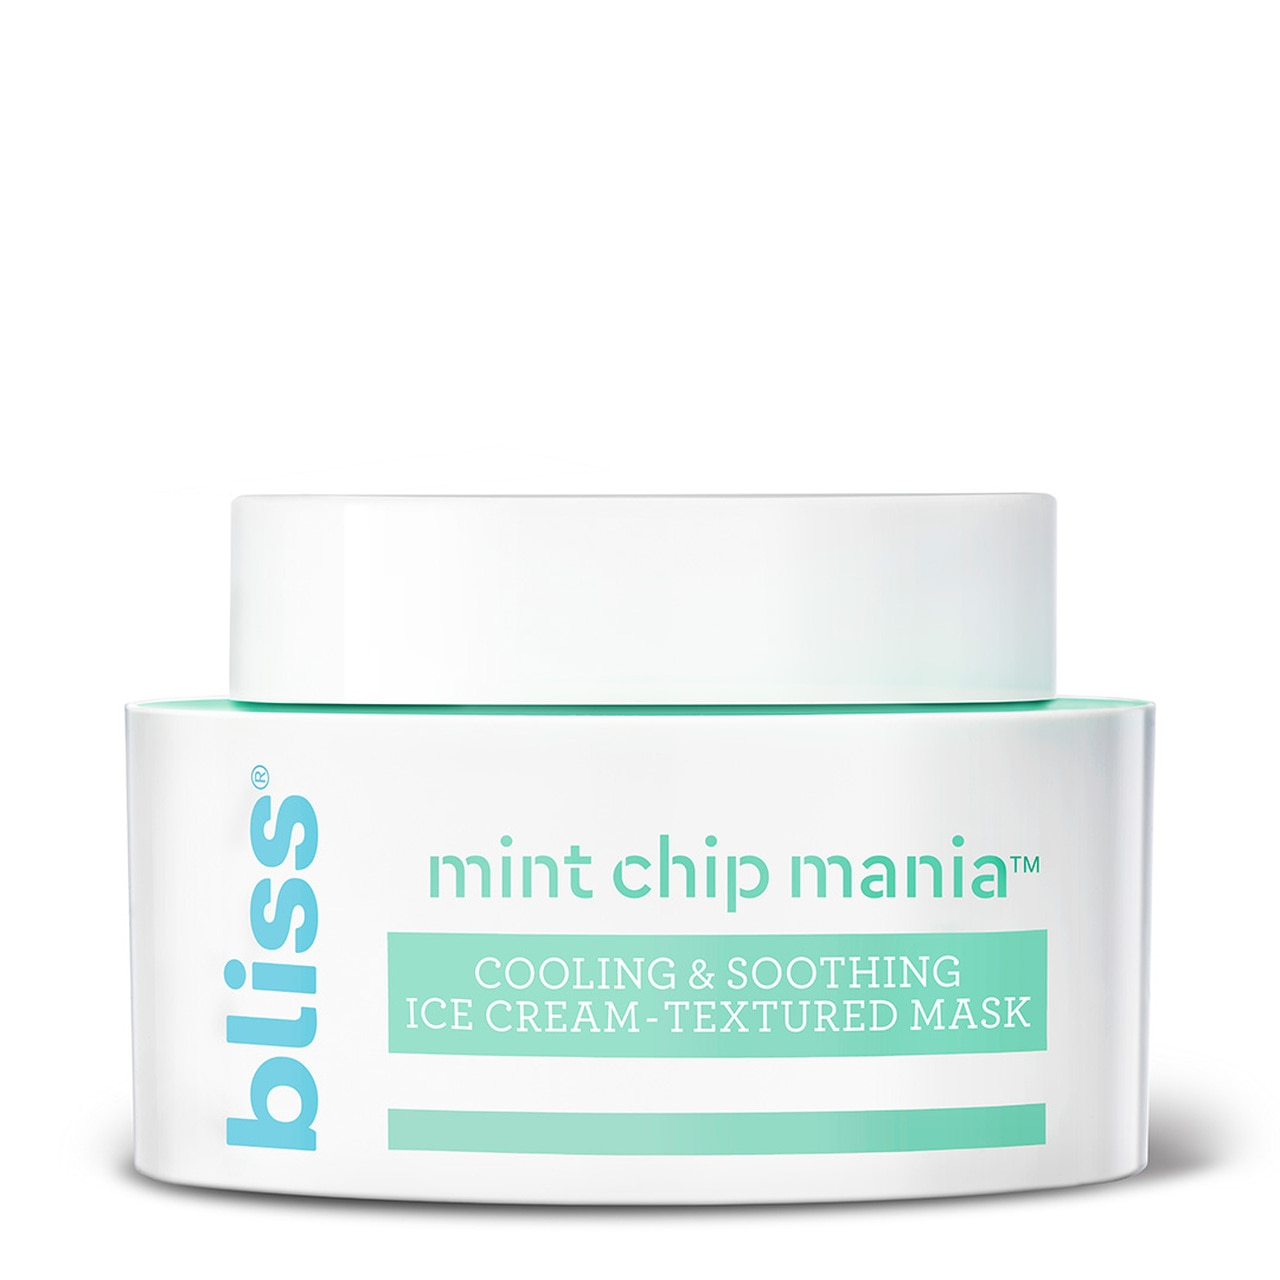 related product products/images/Bliss-MintChipManiaCoolingSoothingIceCreamTexturedMask.jpg